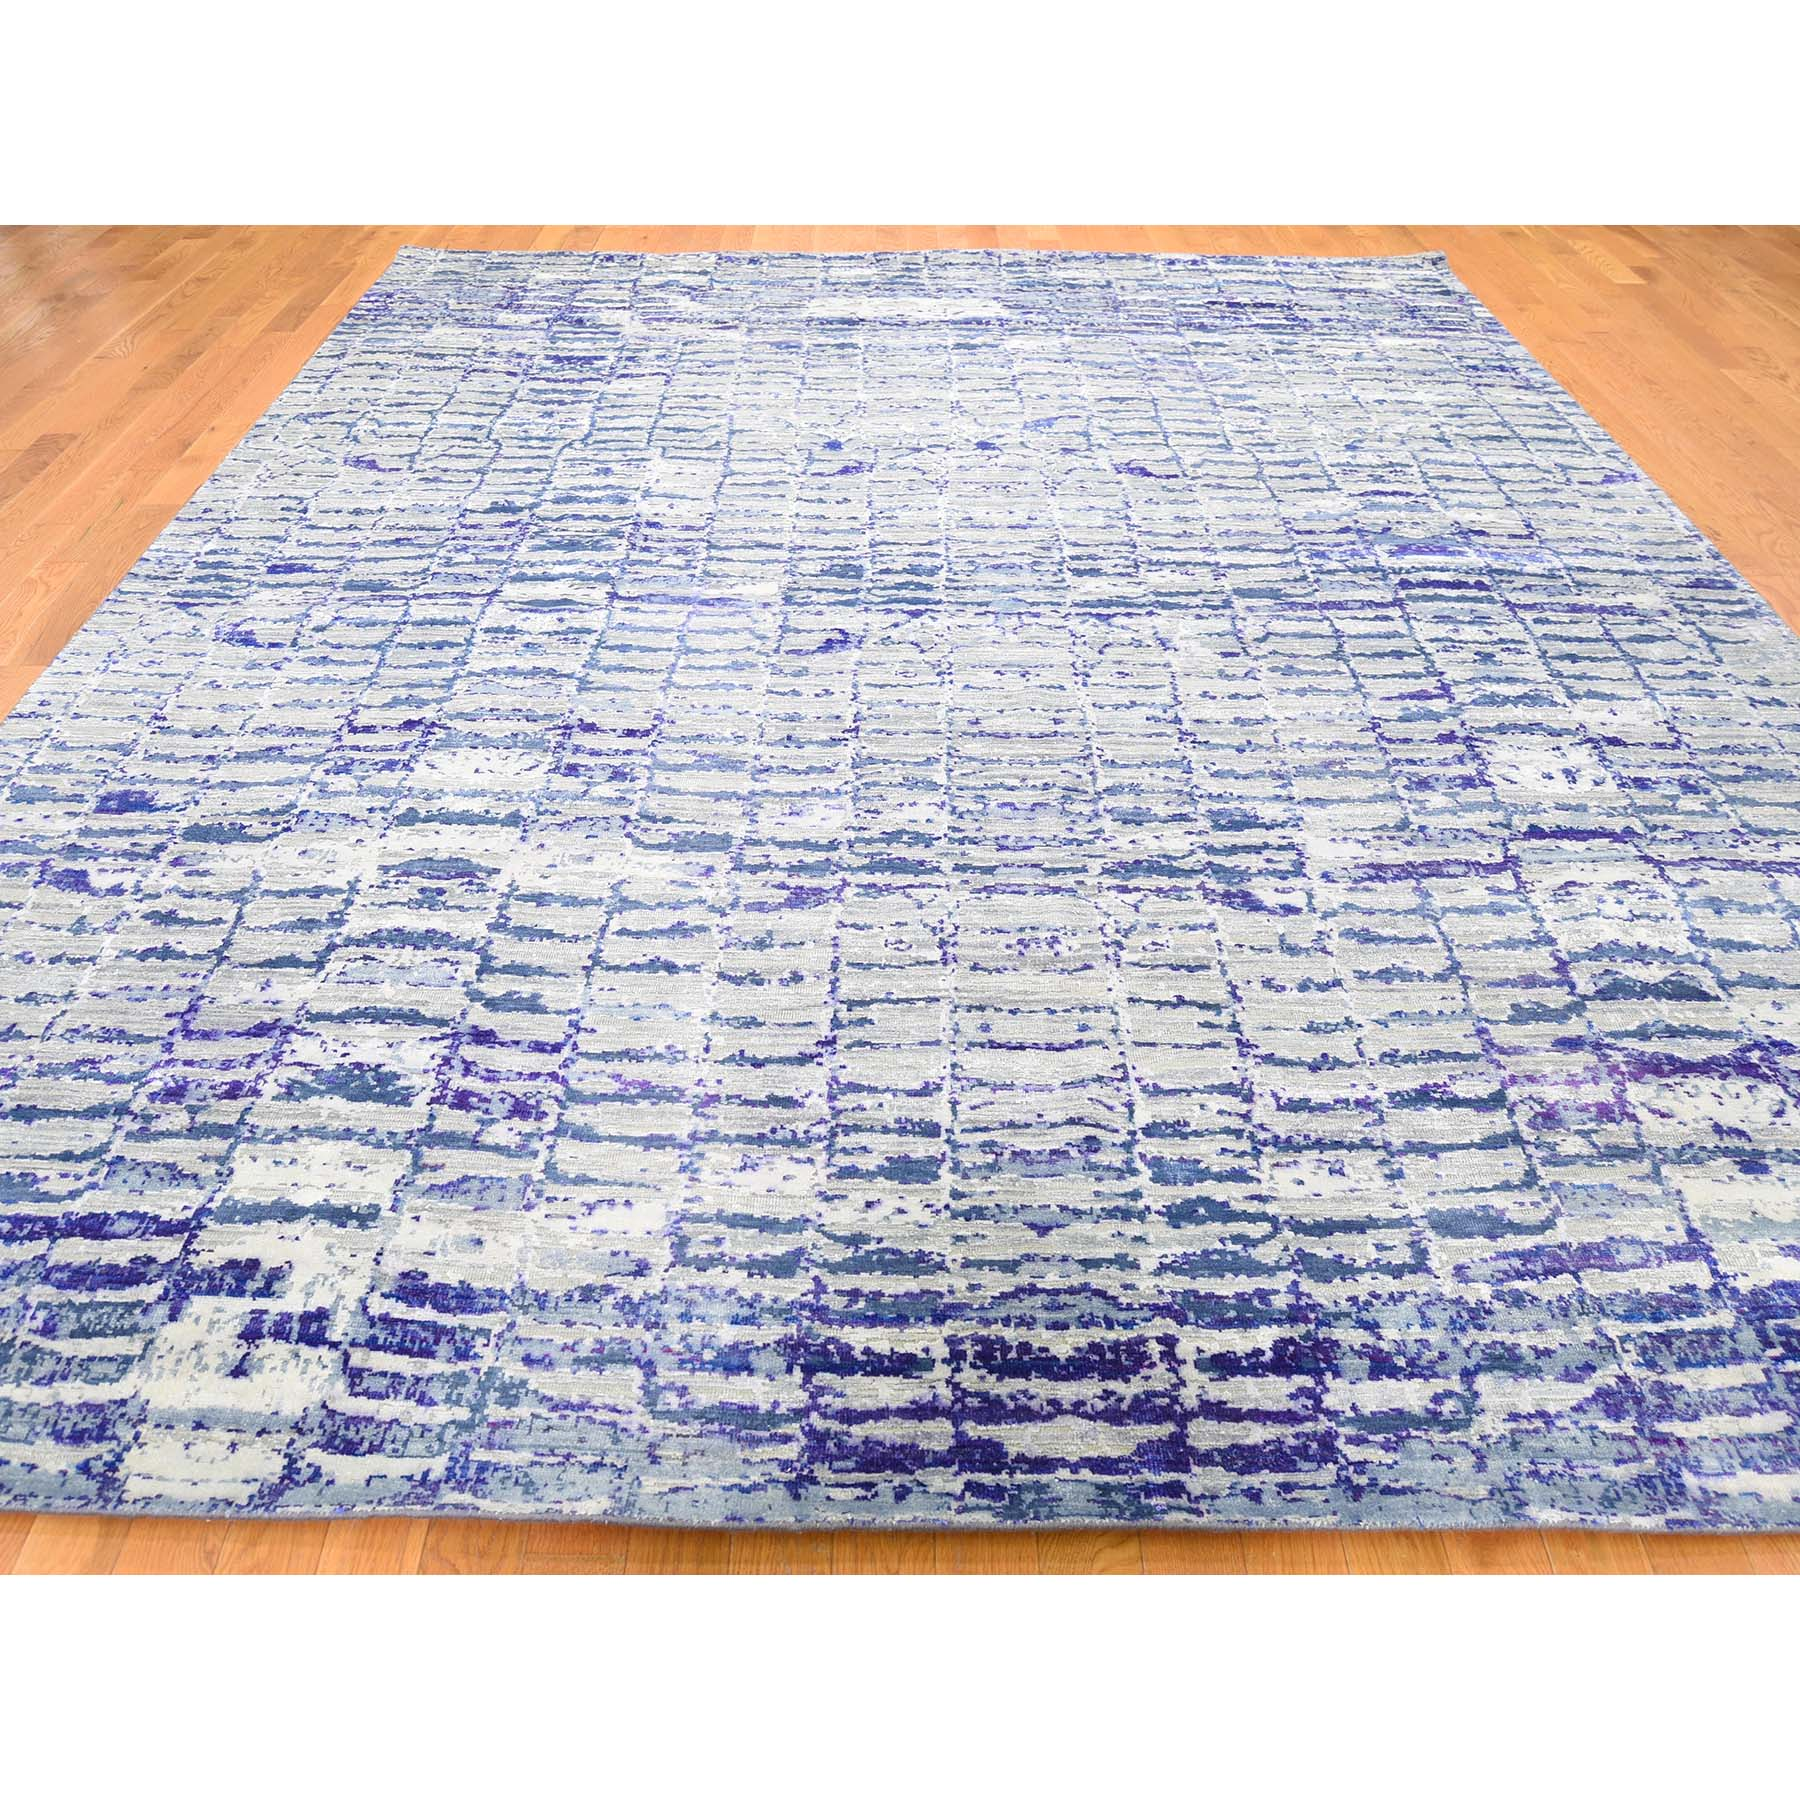 "10'2""x13'10"" Sari Silk Diminishing Bricks Hand-Knotted Oriental Rug"